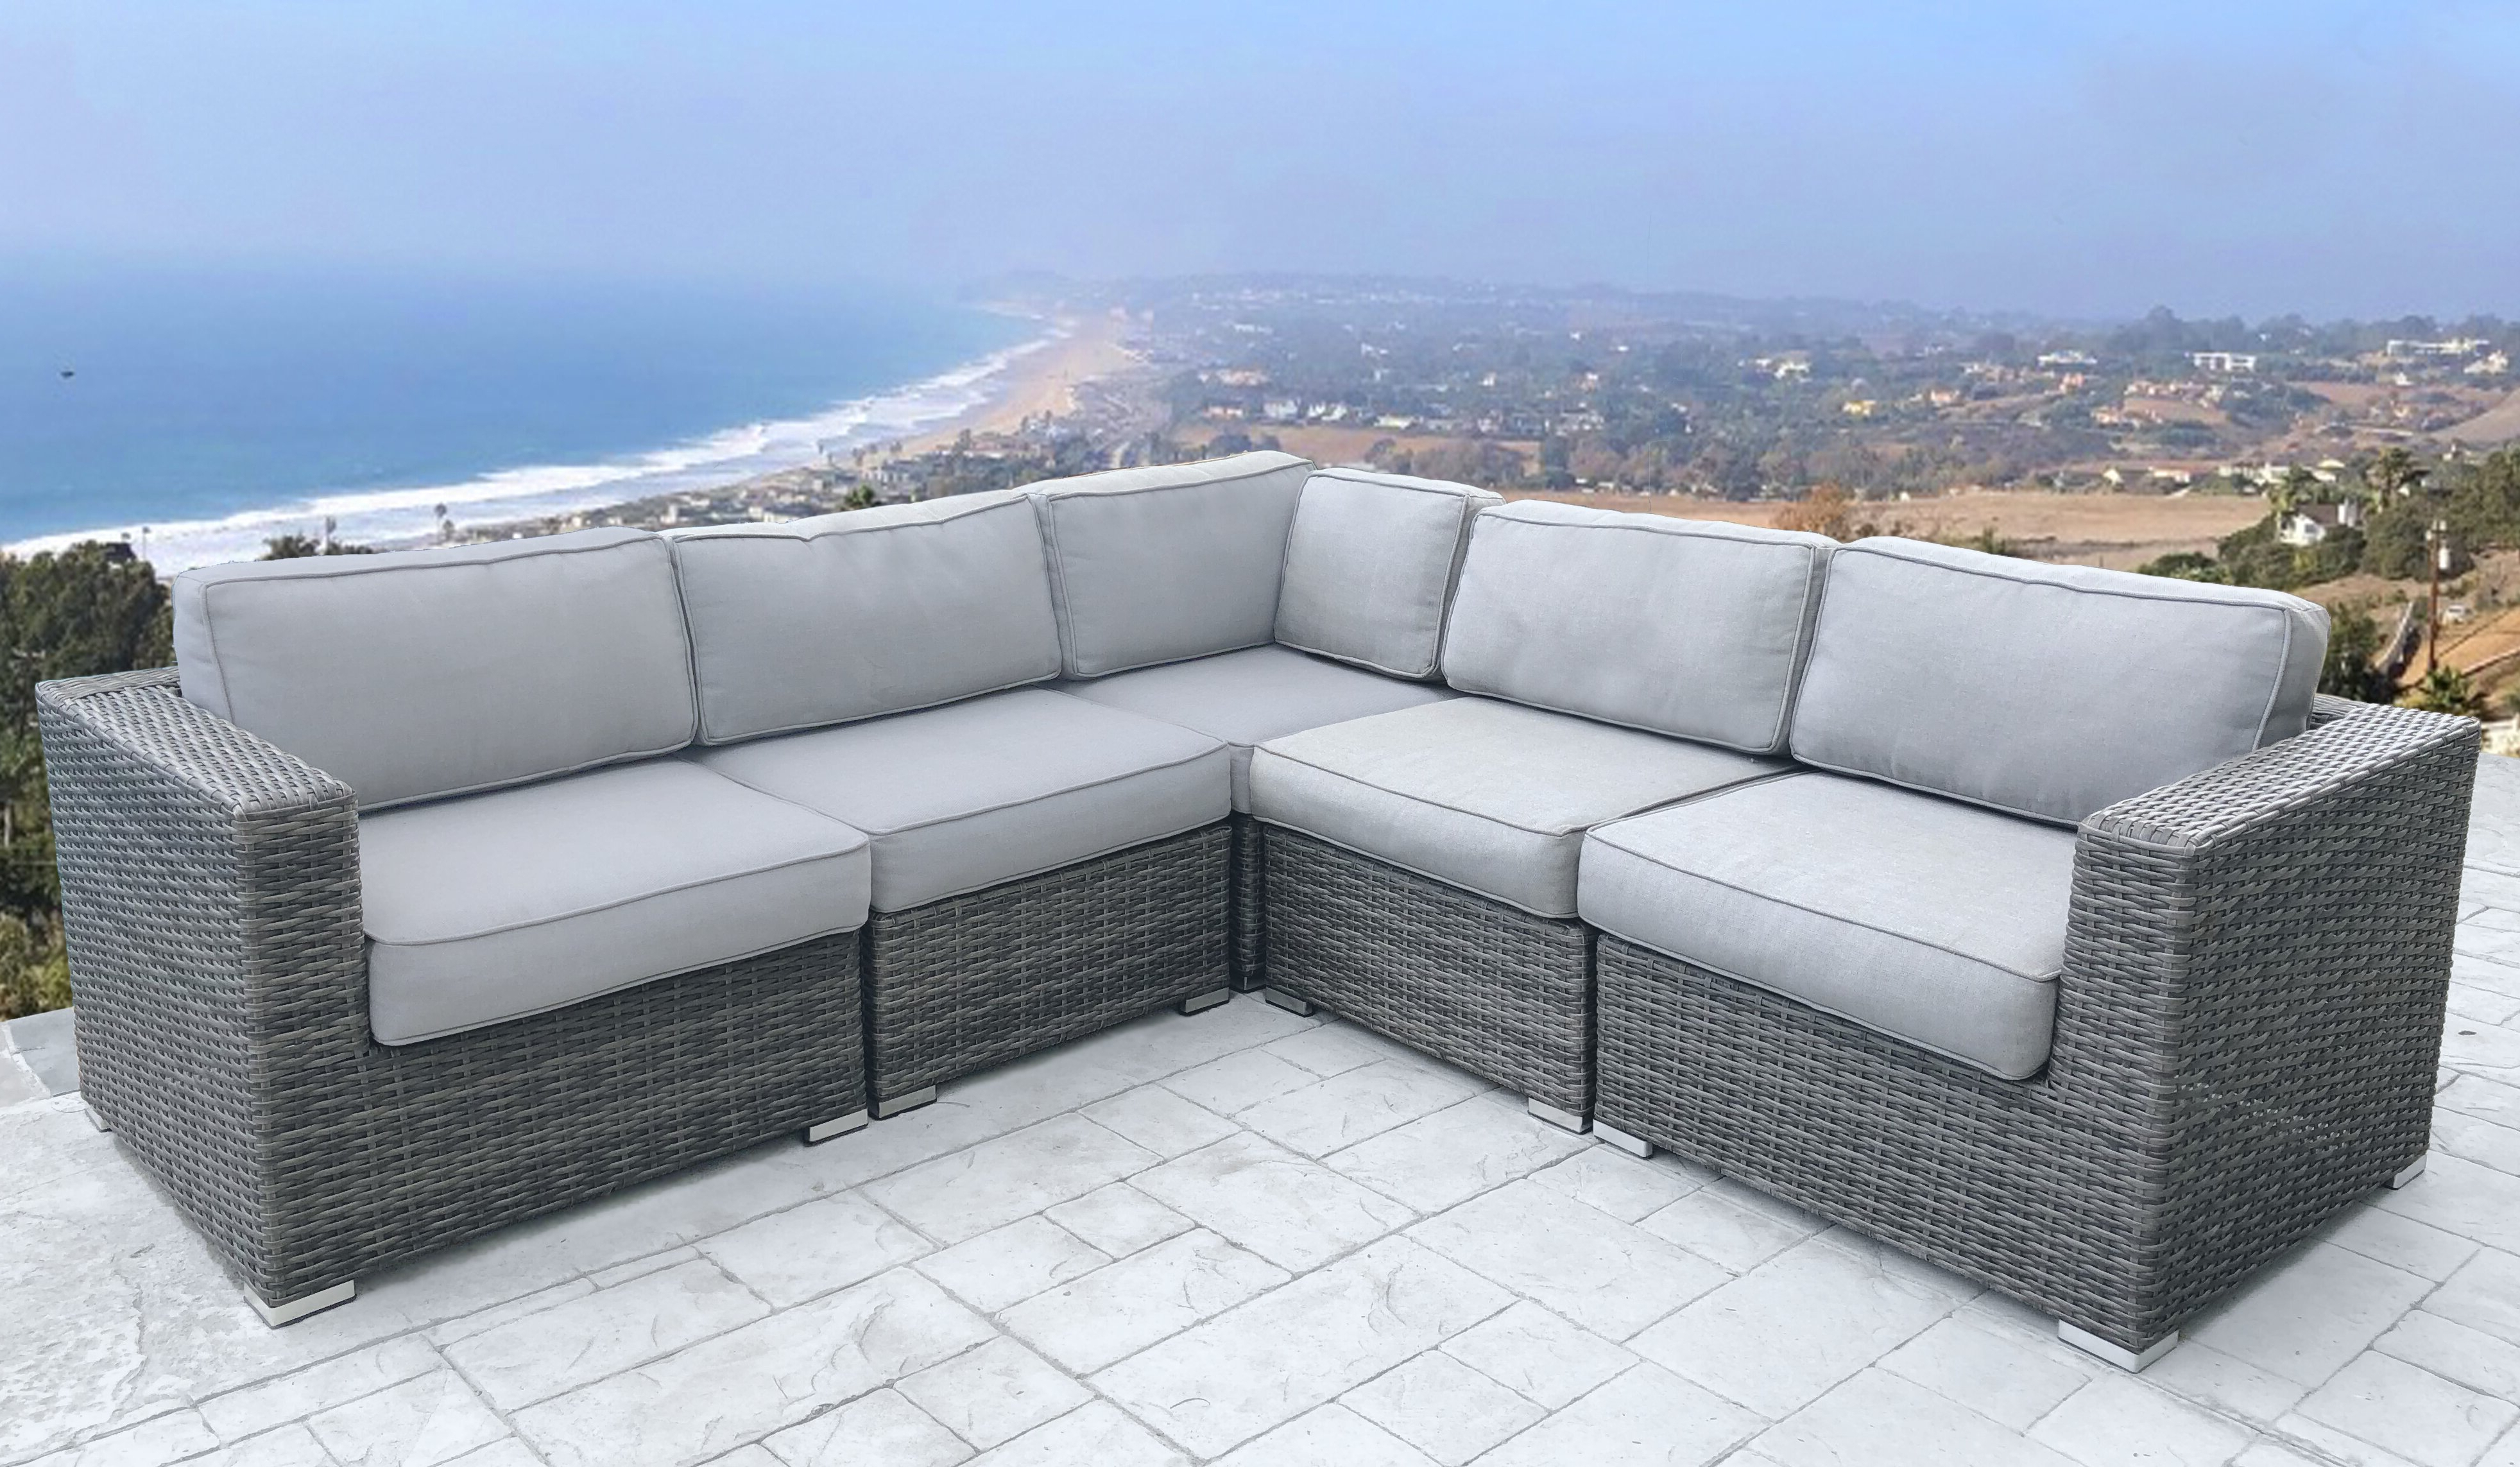 Trendy Rowley Patio Sofas Set With Cushions Throughout Nolen Patio Sectional With Cushions (View 15 of 20)